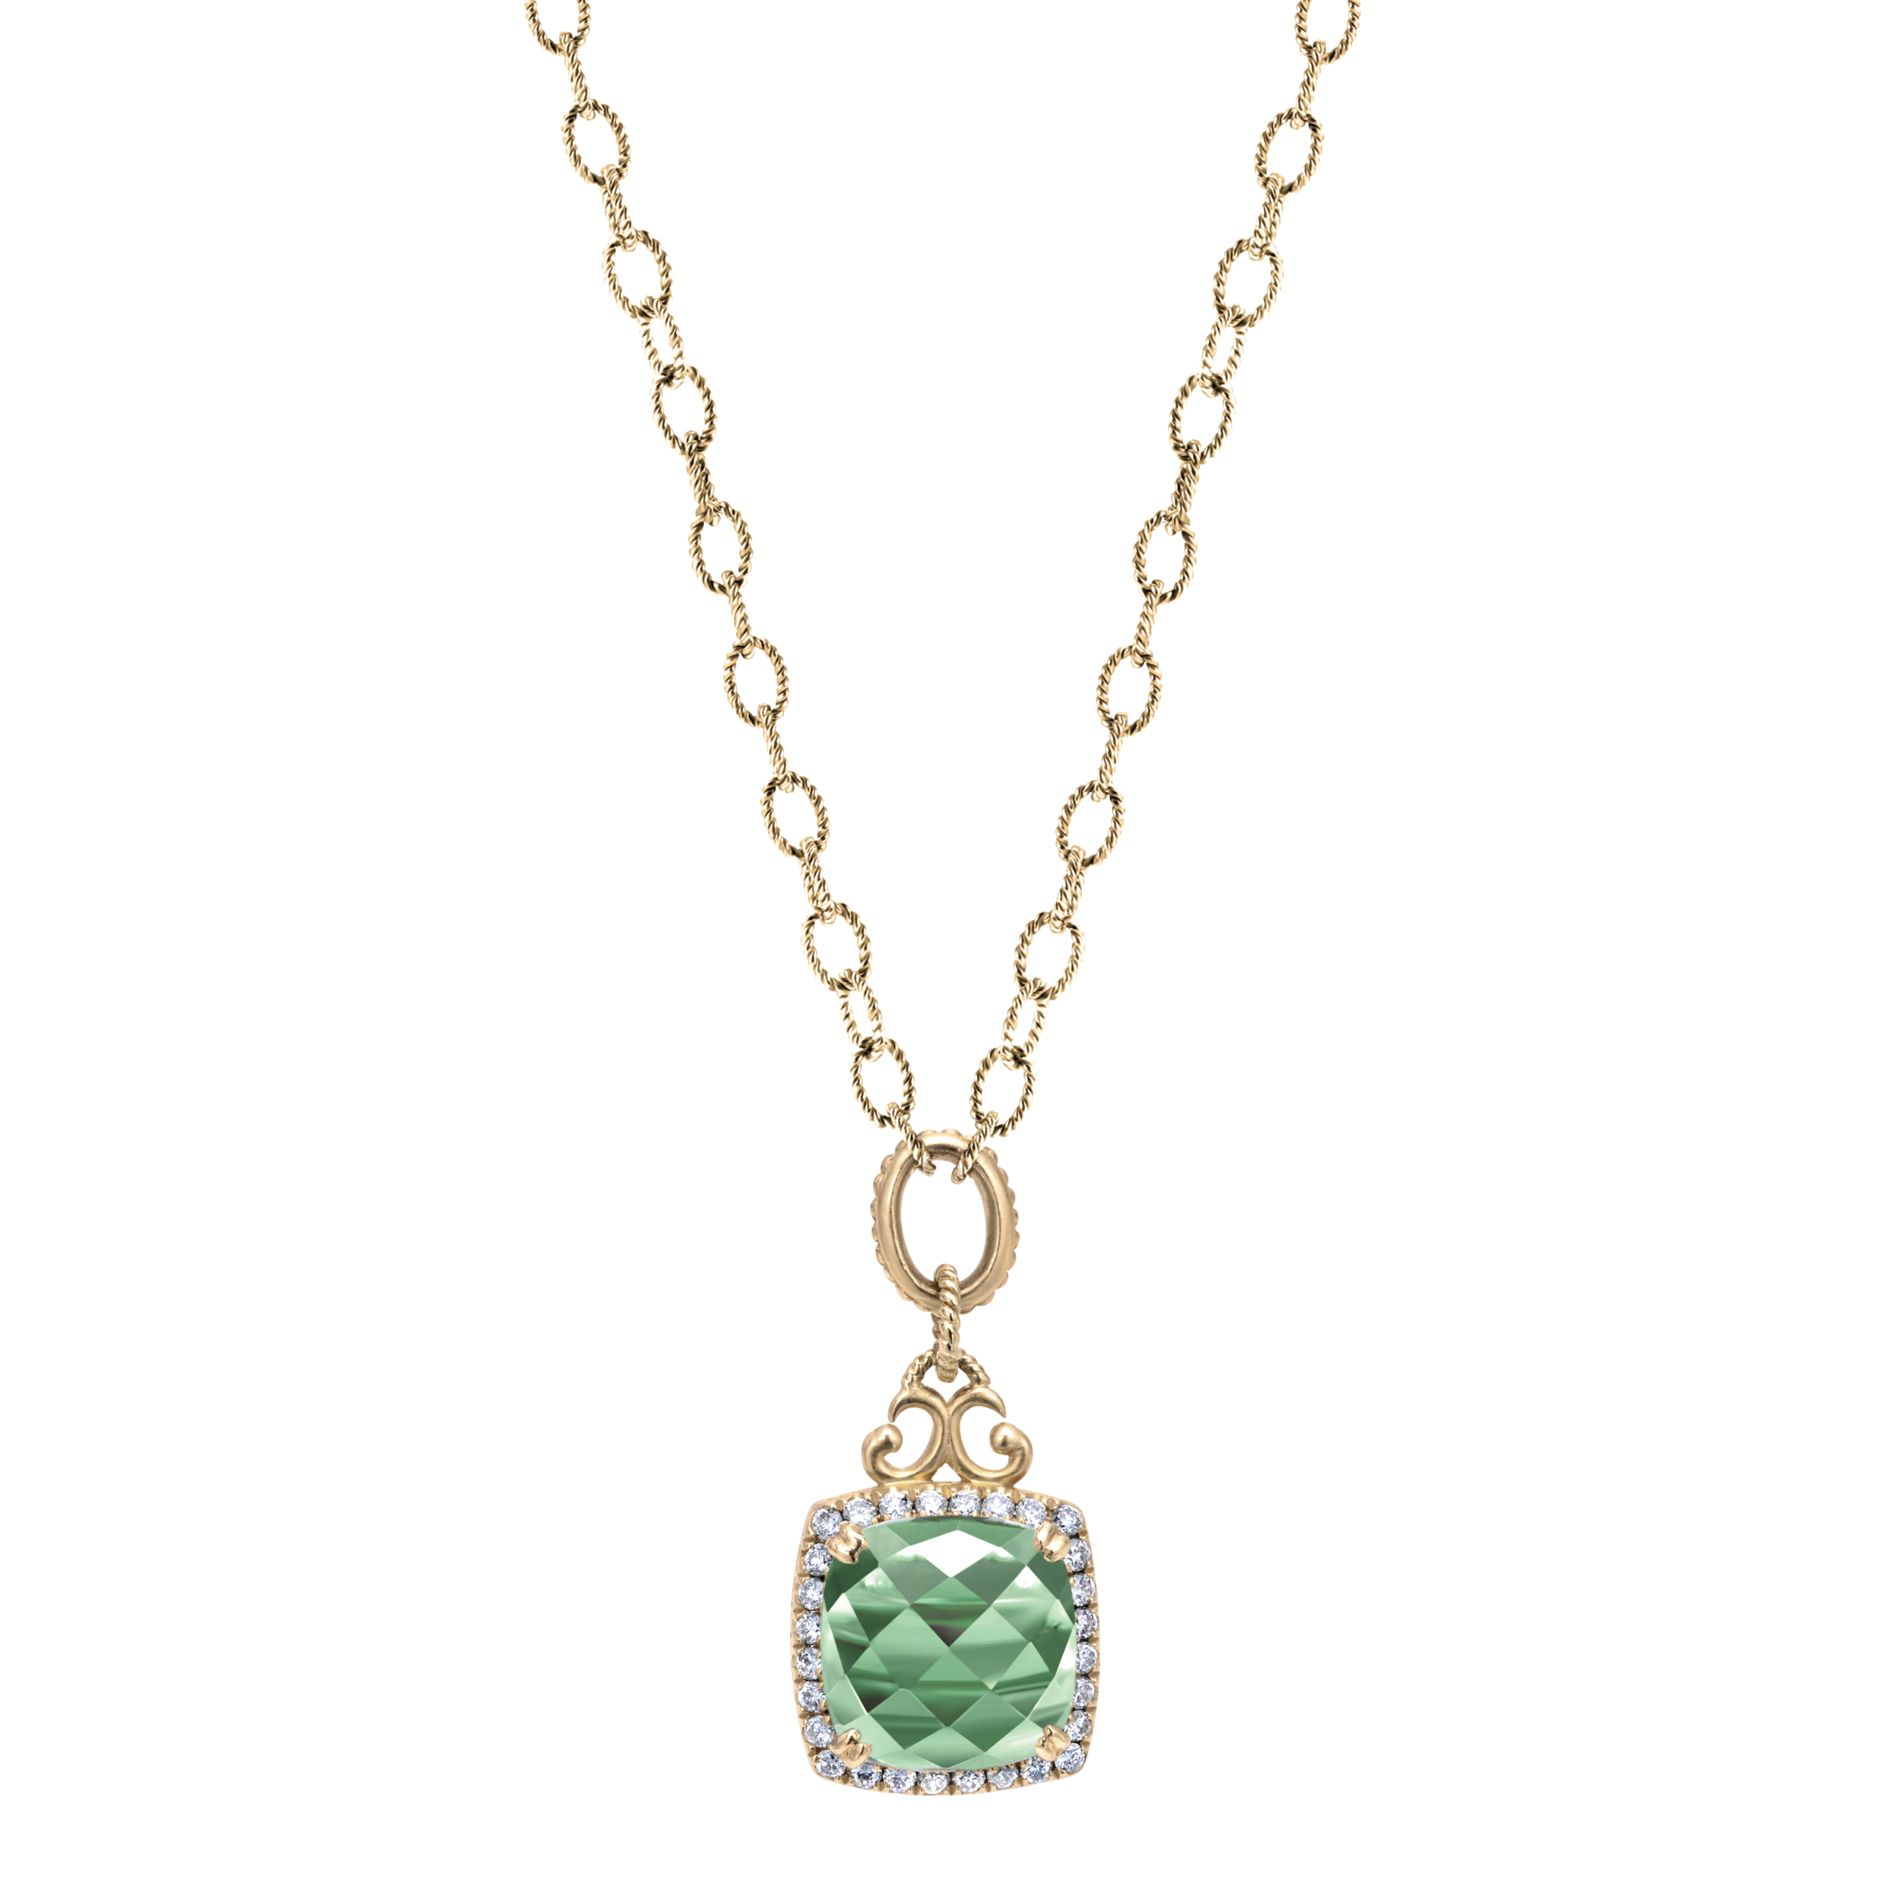 Necklaces - YELLOW GOLD FASHION DIAMOND GREEN AMETHYST NECKLACE